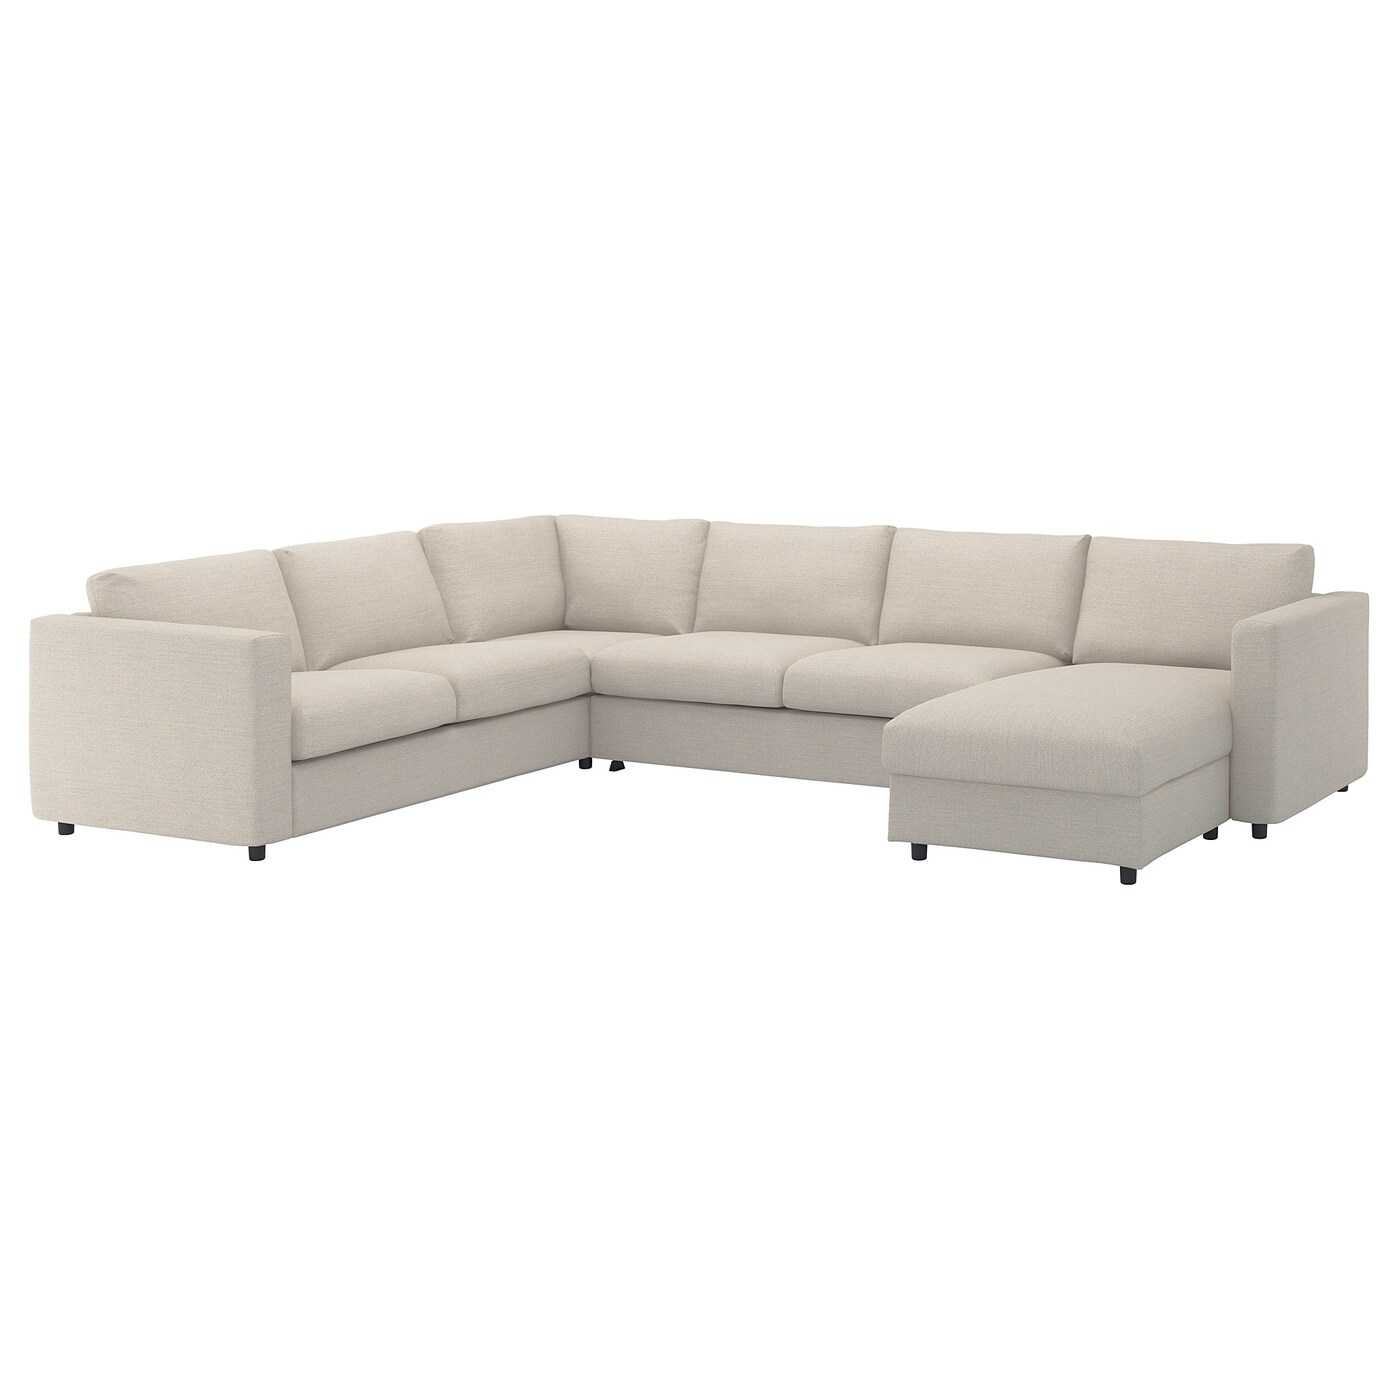 Sofa Ikea Askeby Sofa Beds And Chair Beds Ikea Ireland Dublin